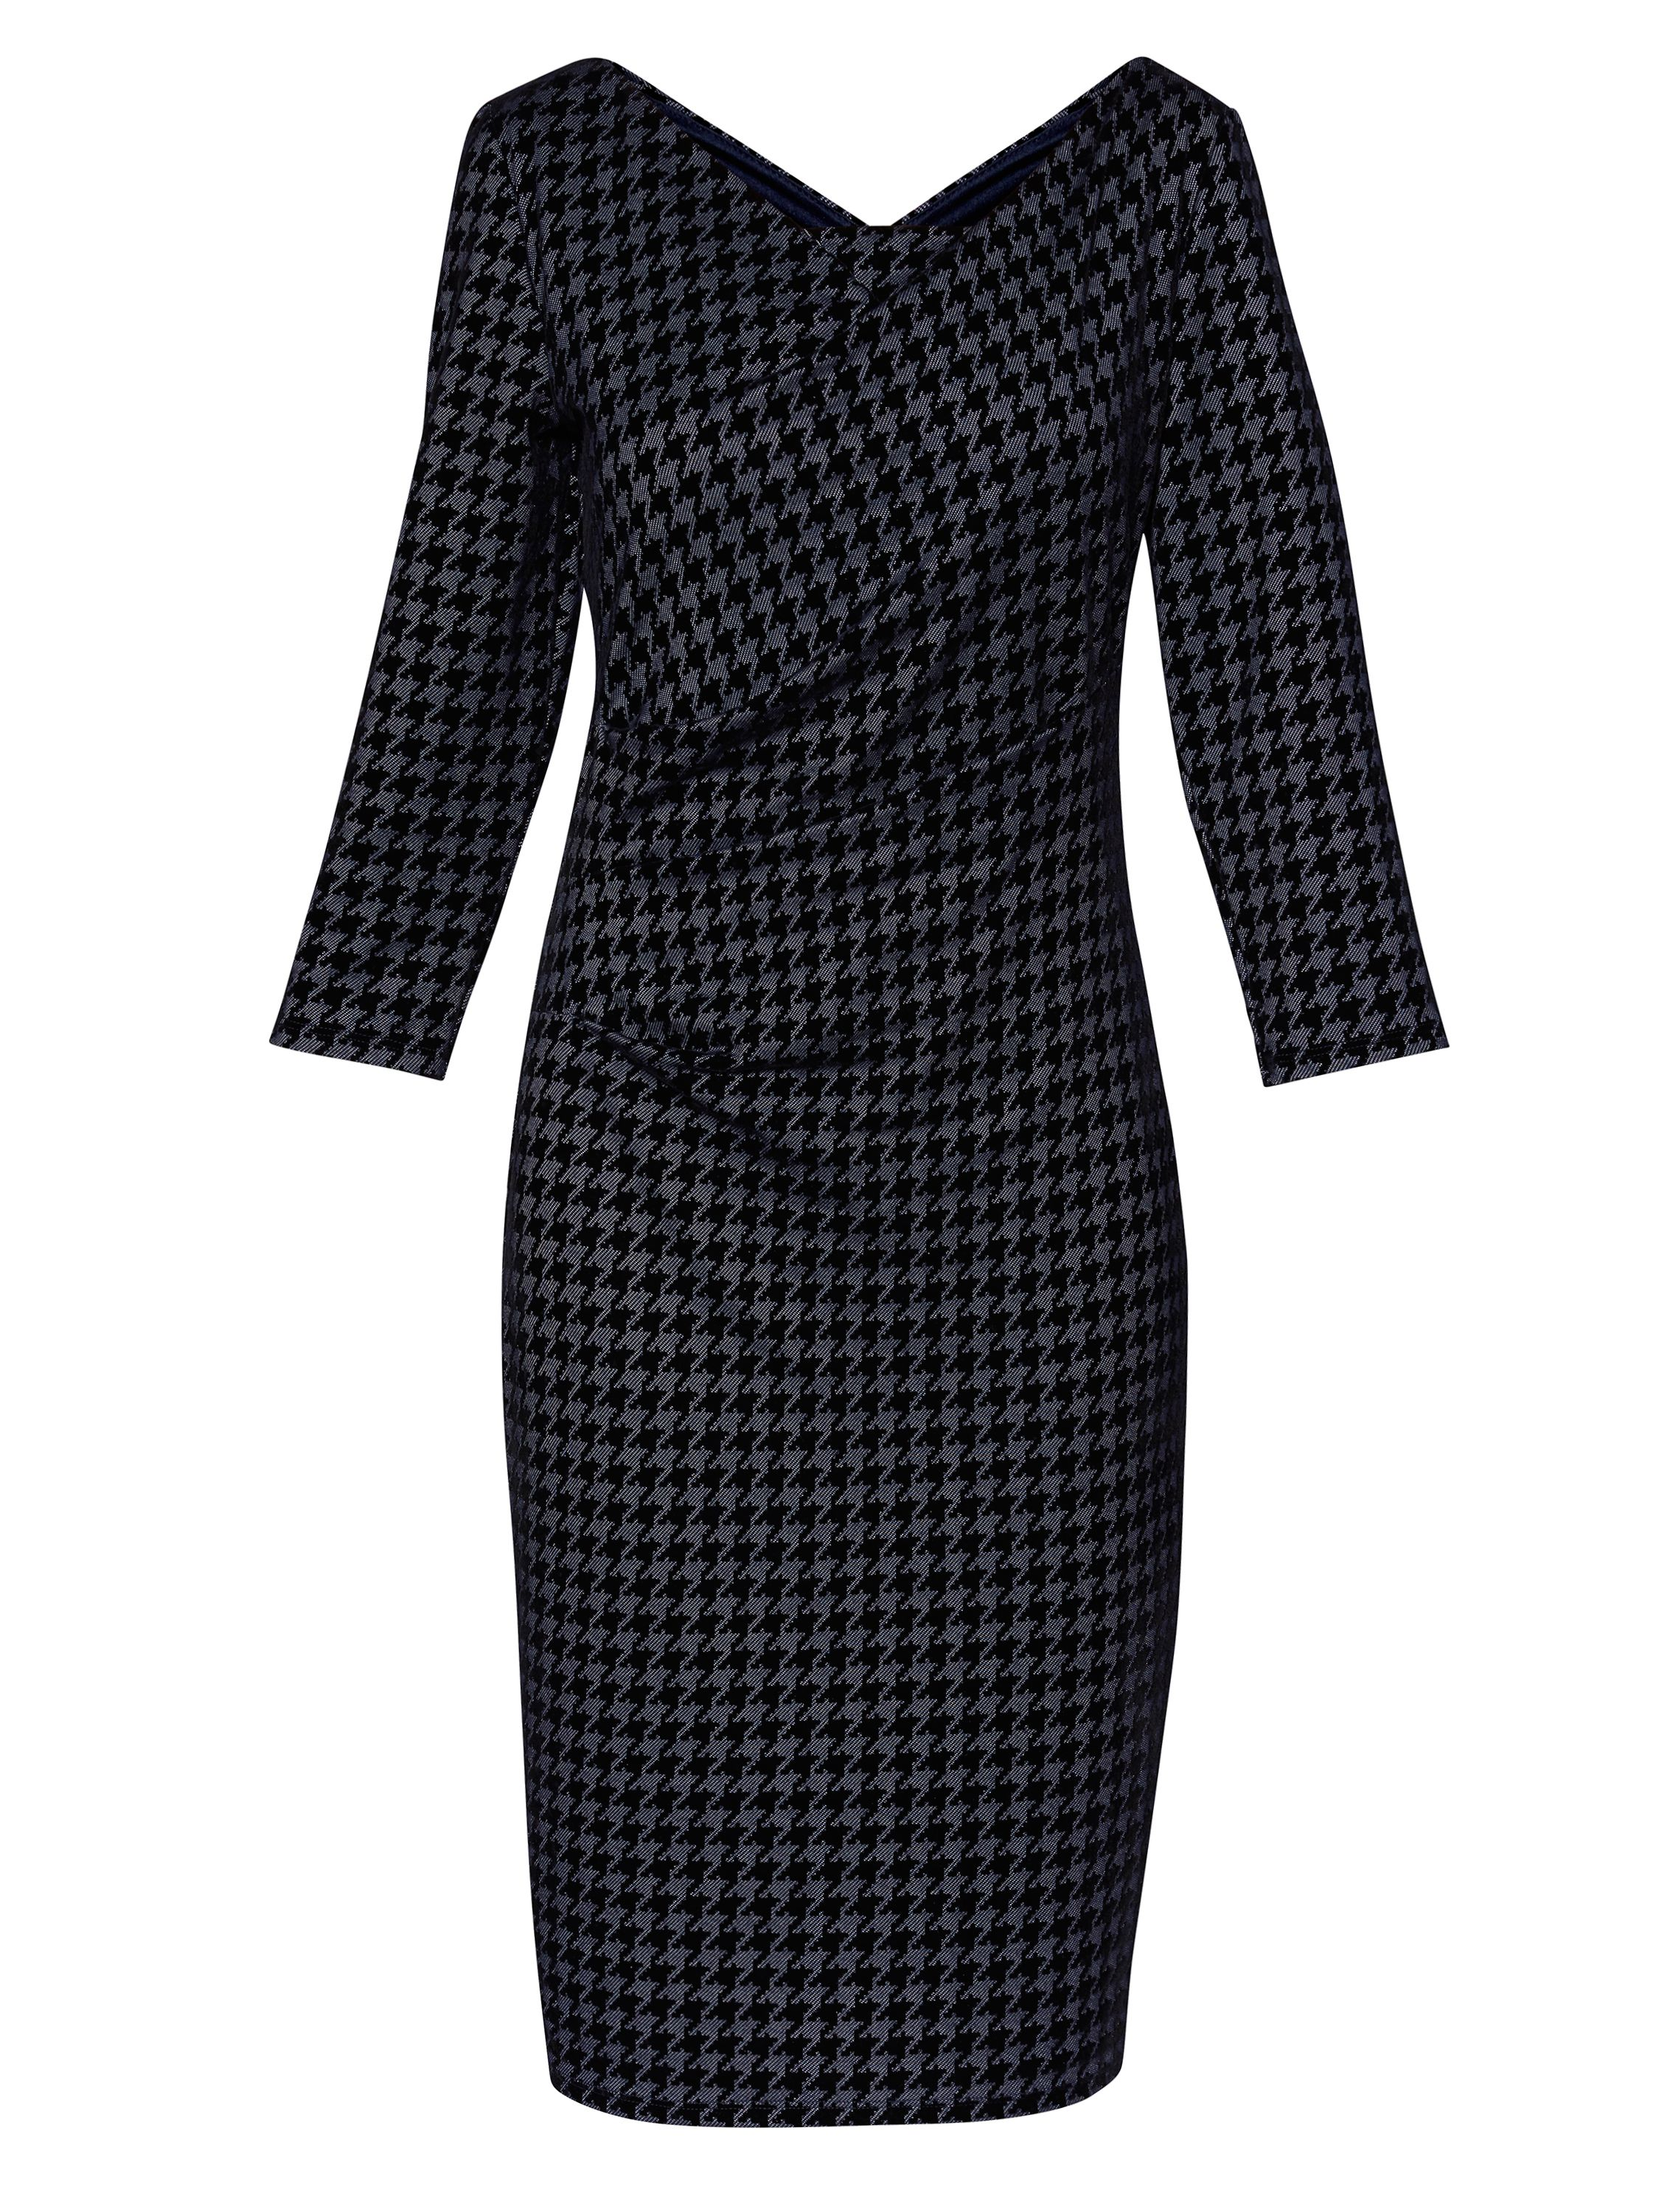 Gina Bacconi Rachel Dogtooth Flock Dress, Dark Blue